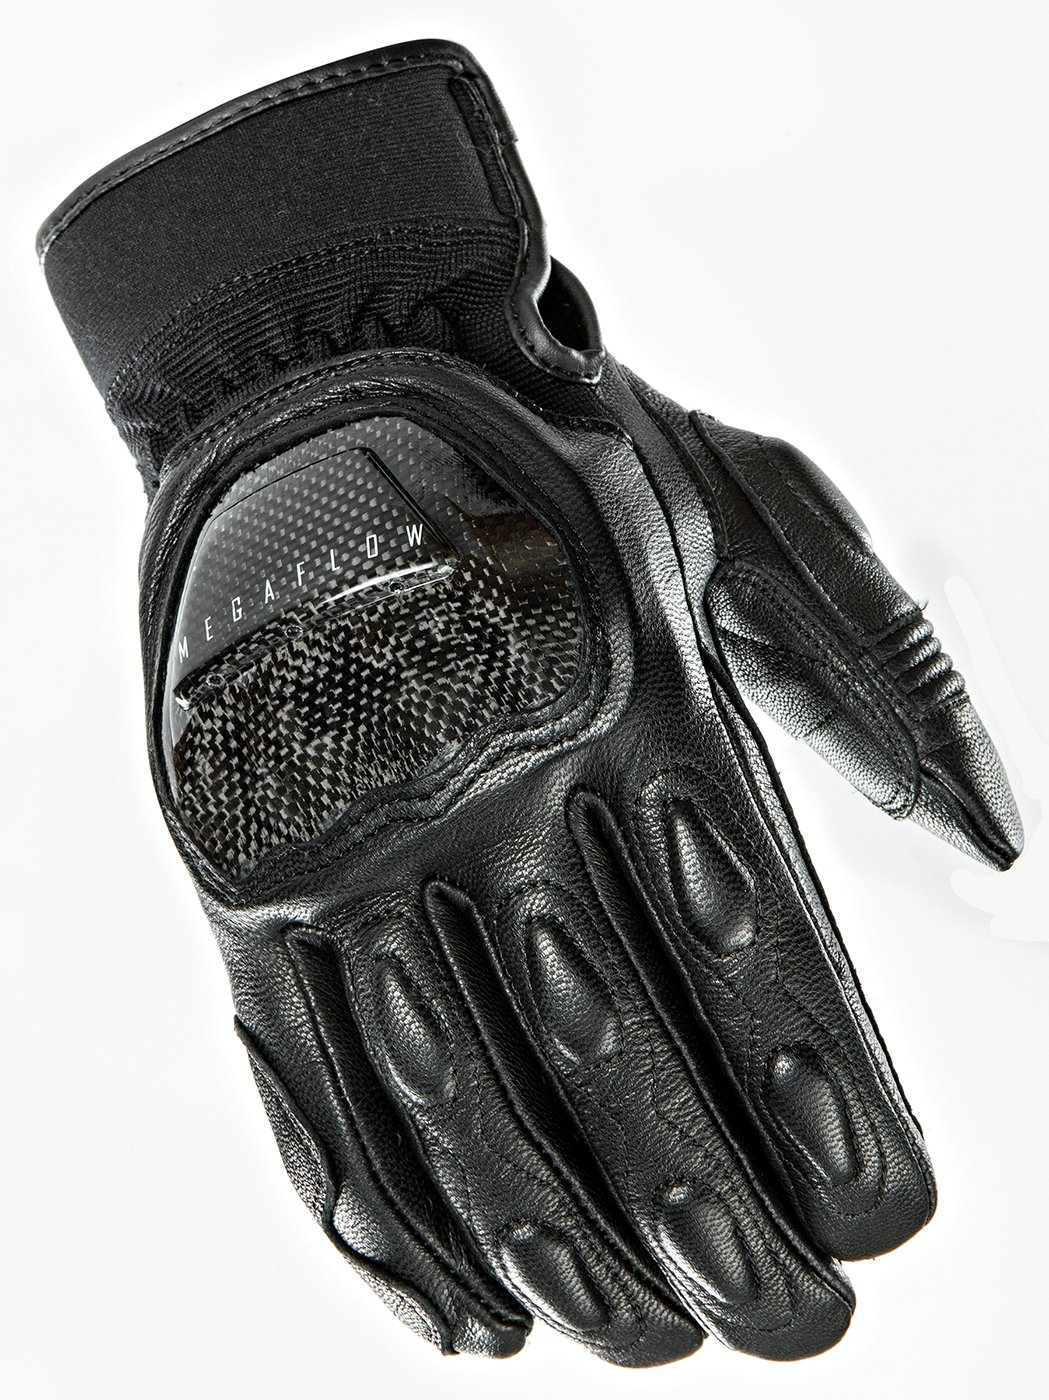 Motorcycle gloves tight or loose - The Joe Rocket Speedway Motorcycle Gloves Are A Perfect Match For Any Biker Who Is Looking For Riding Gloves To Protect Their Hands